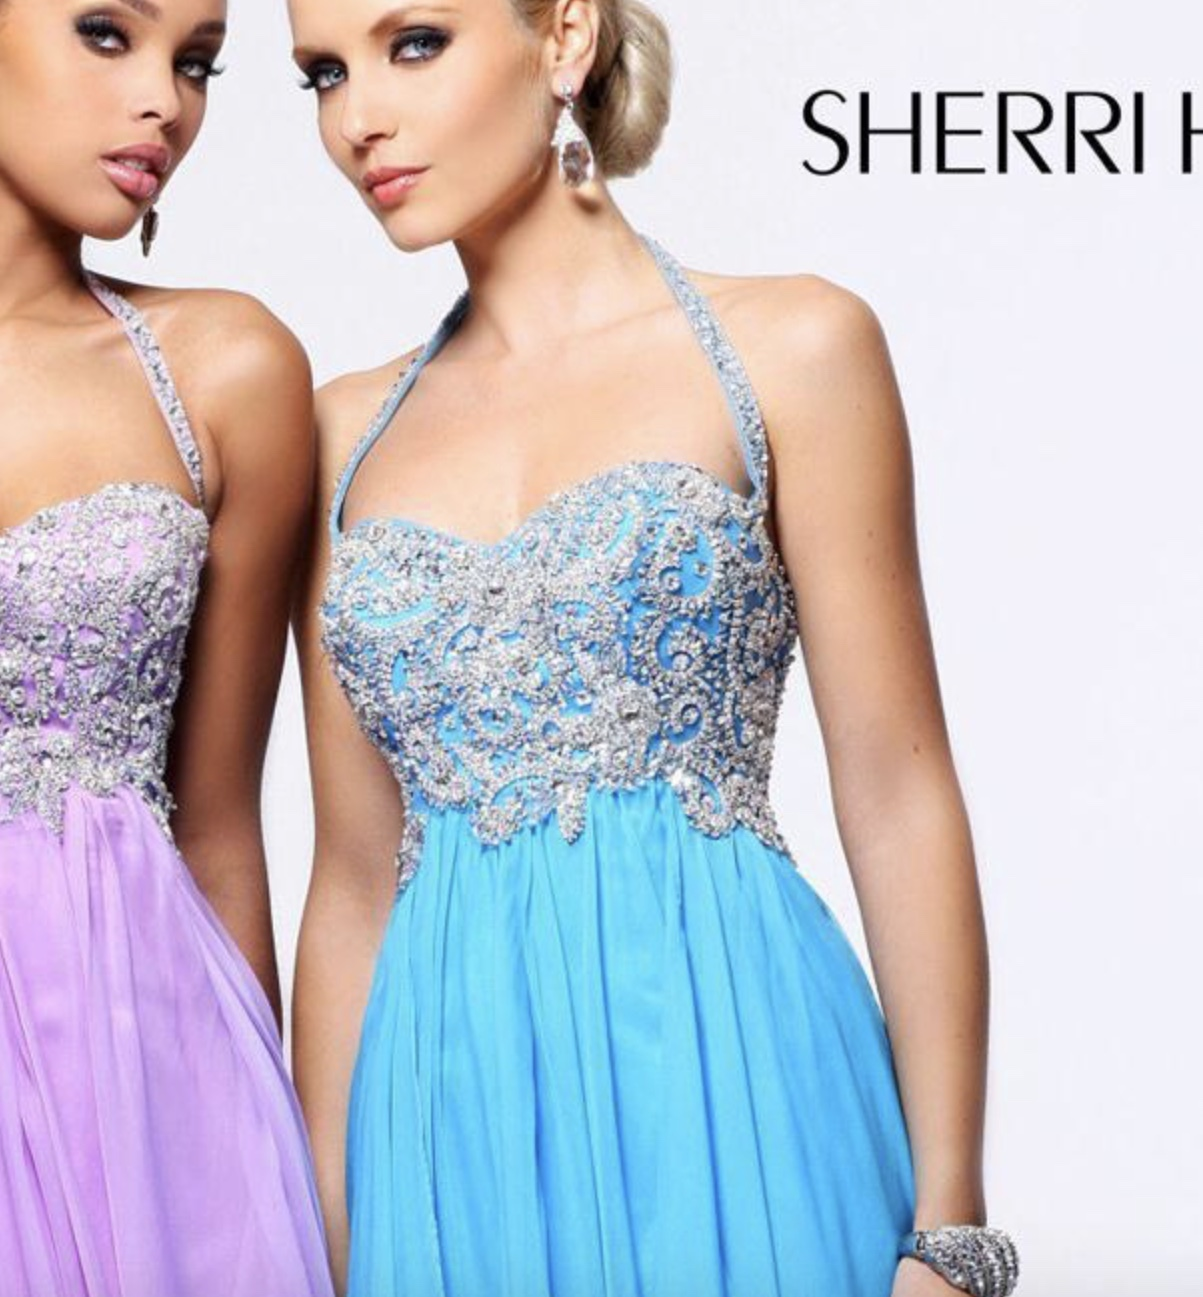 Sherri Hill Prom Dress style 3836 (blue) rental in San Diego, CA